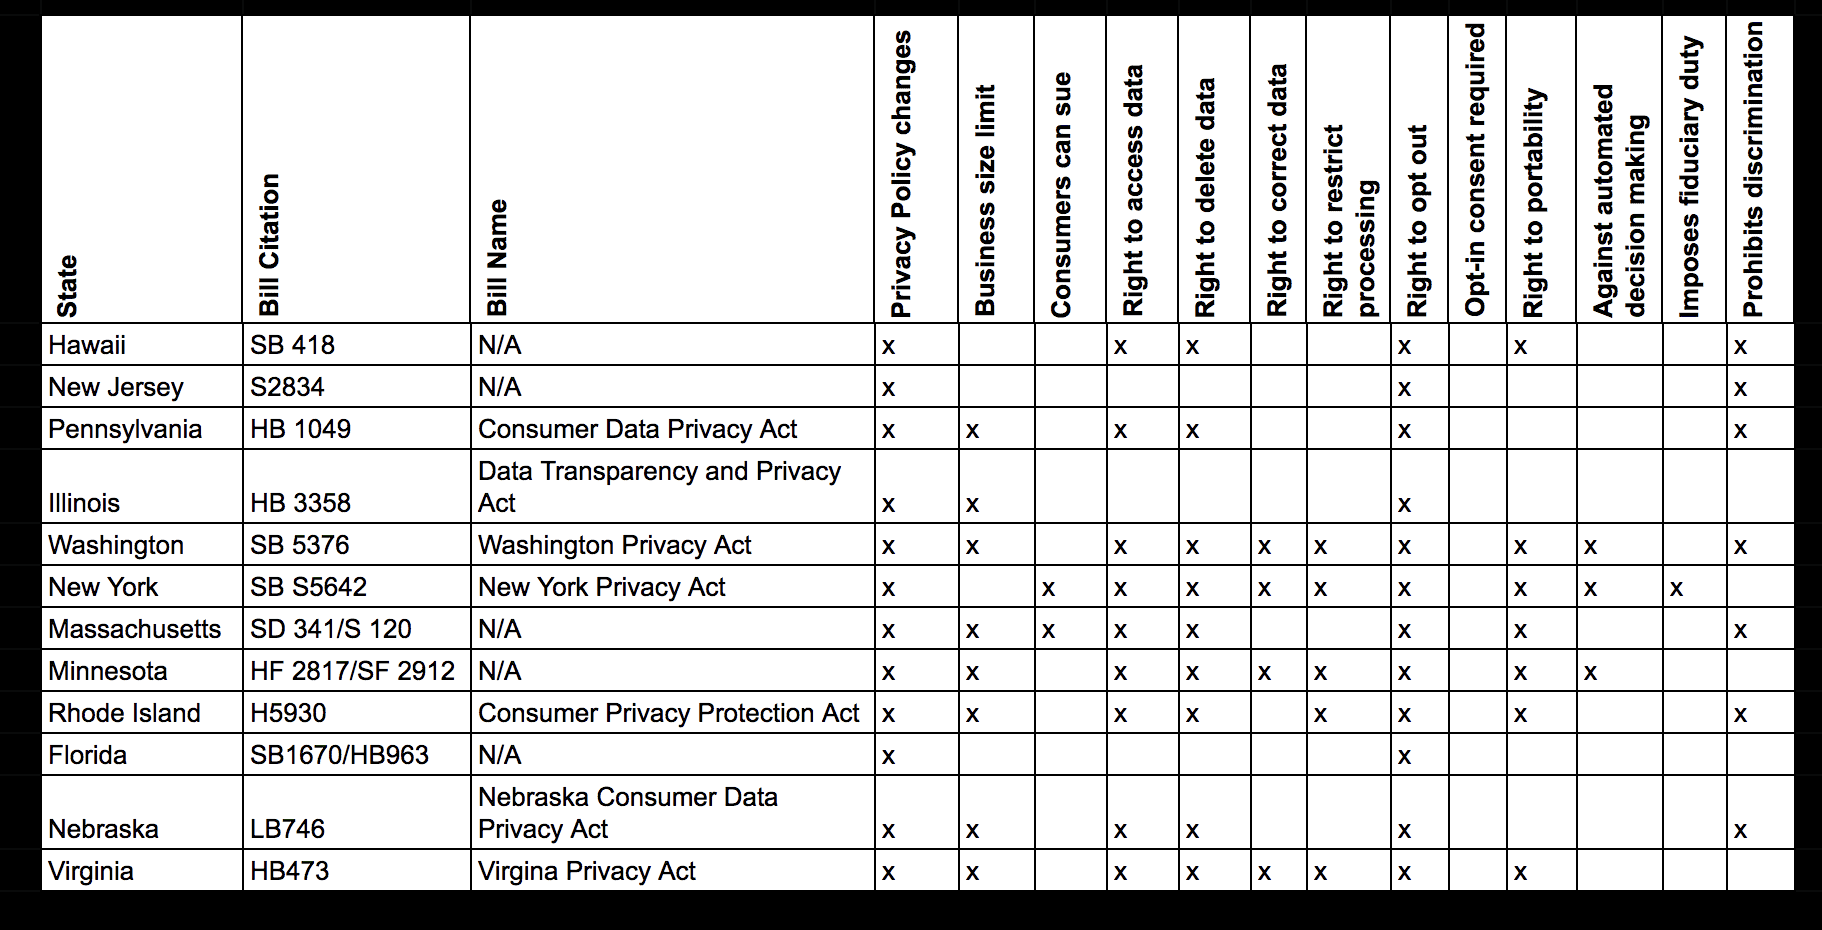 State privacy bill tracker